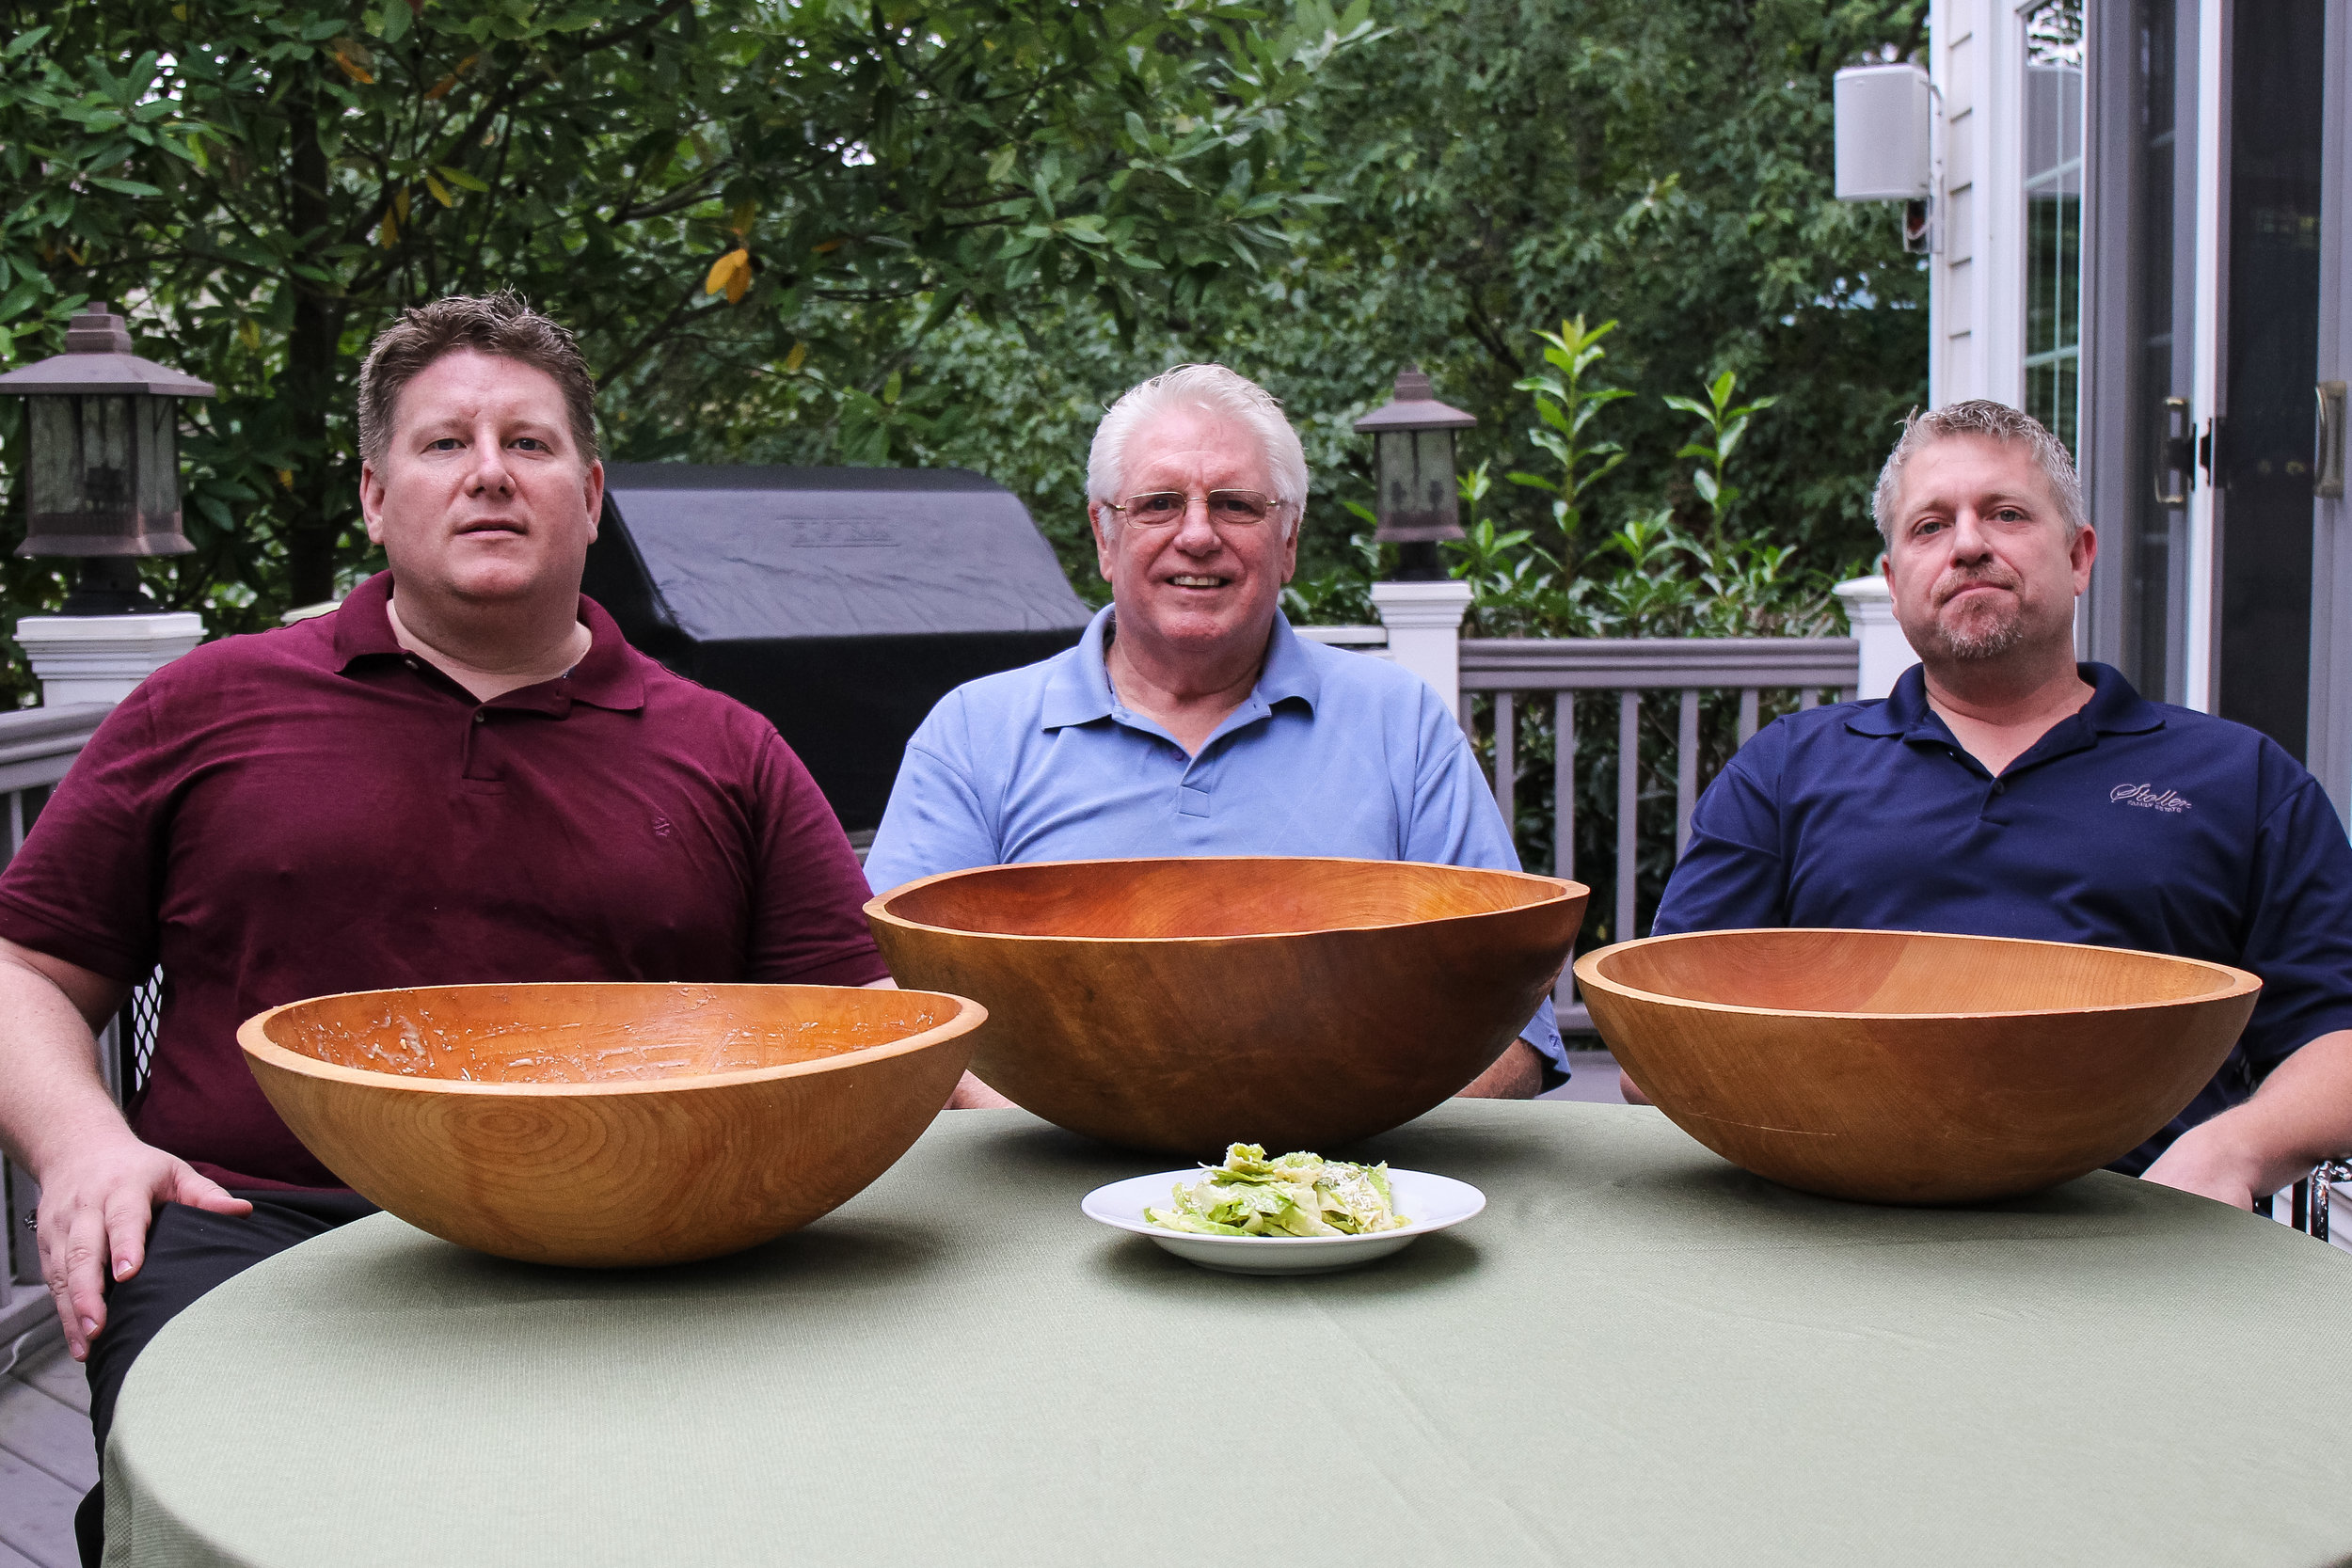 The Climes with their bowls. Christopher, Robert and Scott.